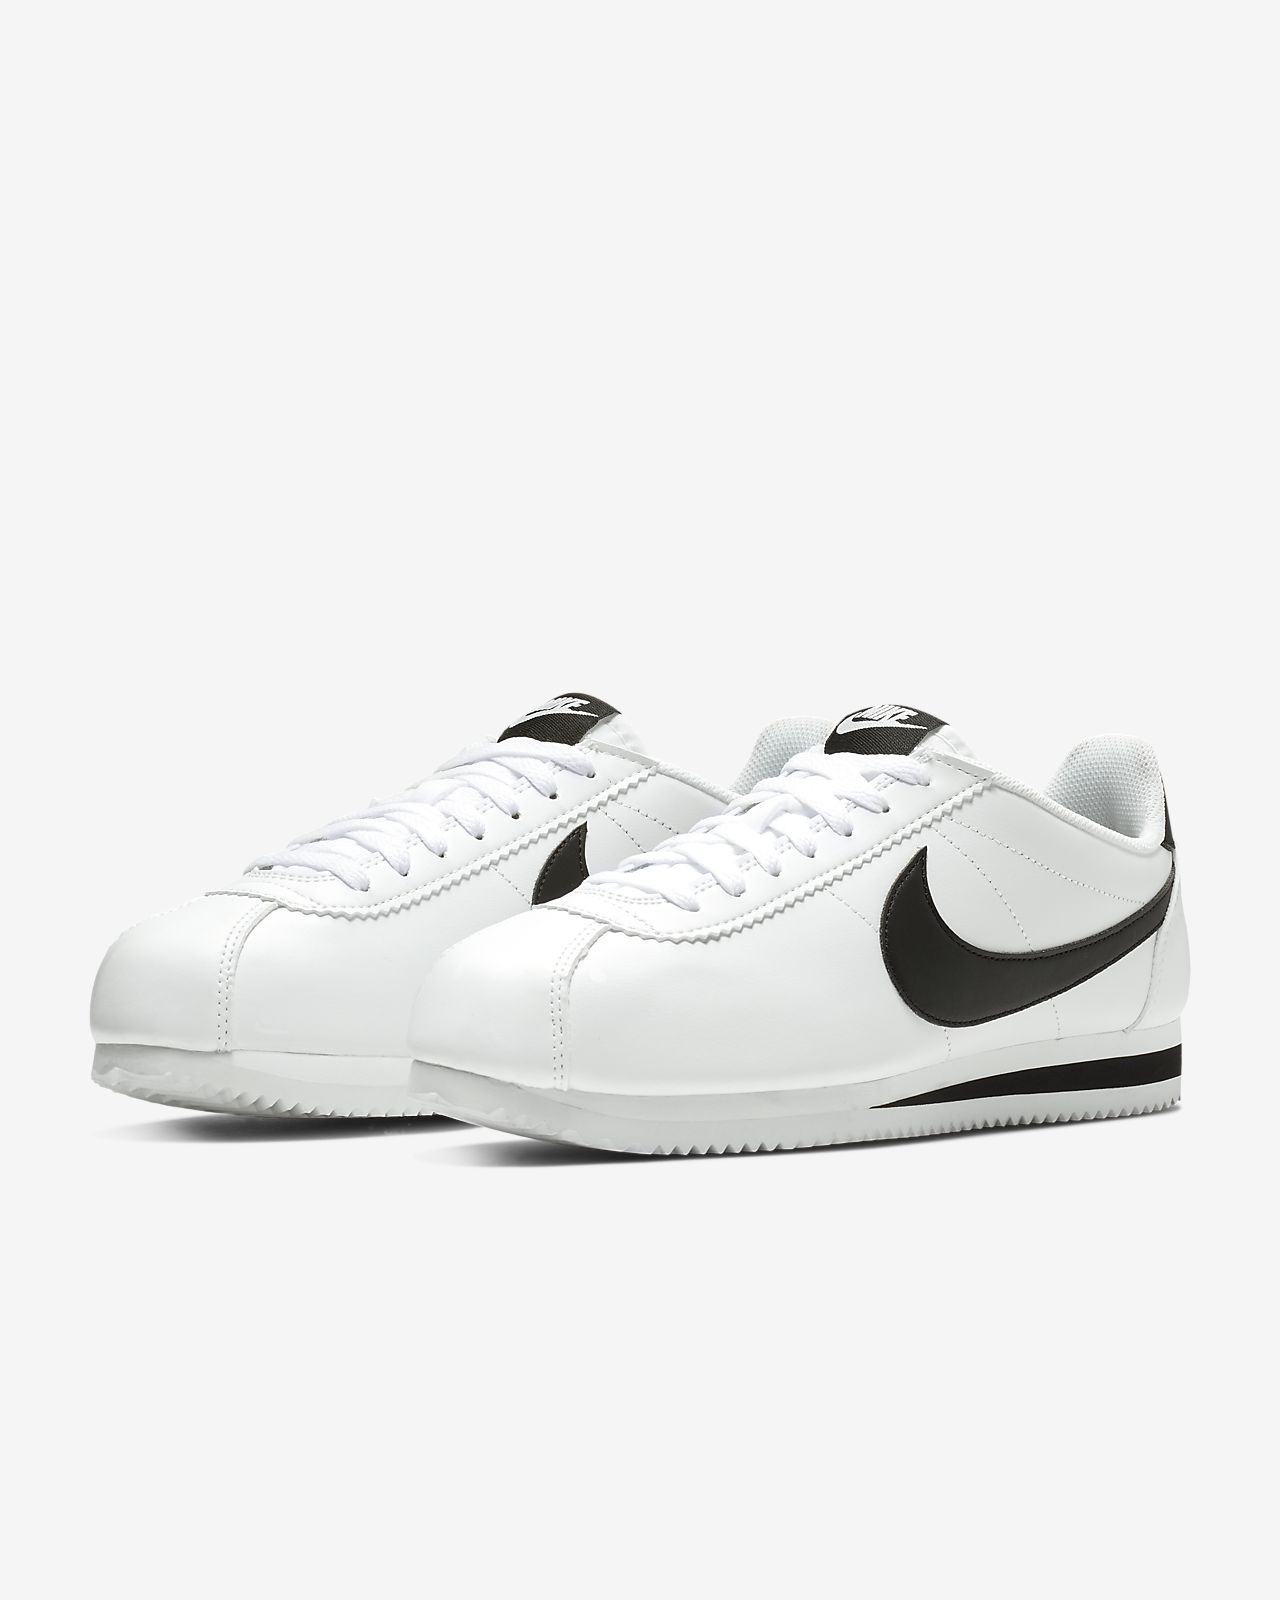 Nike Cortez Women Leather Shoes Black White